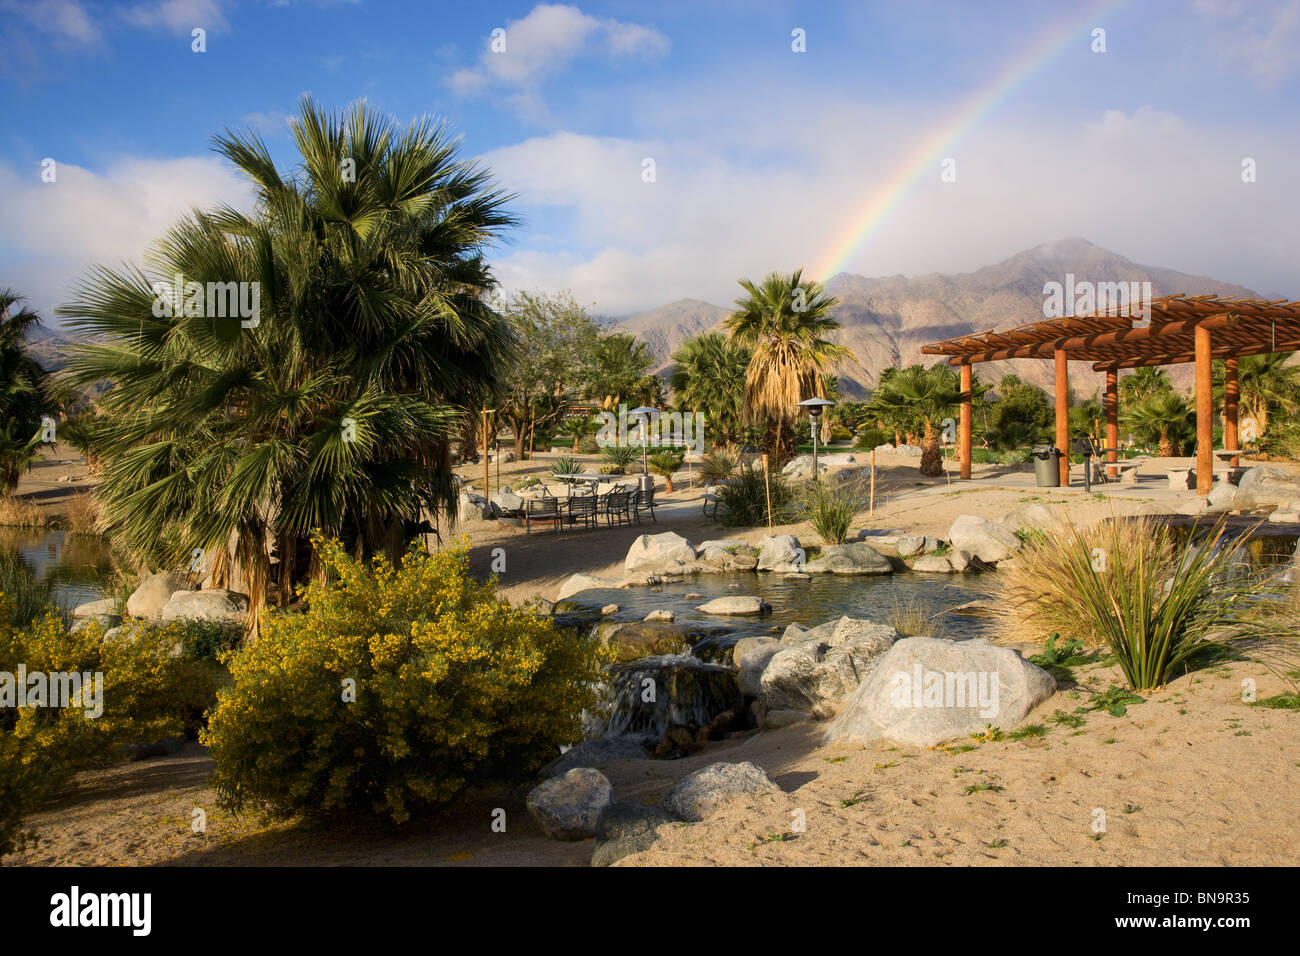 A rainbow at The Springs at Borrego RV Resort and Golf Course, Borrego Springs, California. - Stock Image